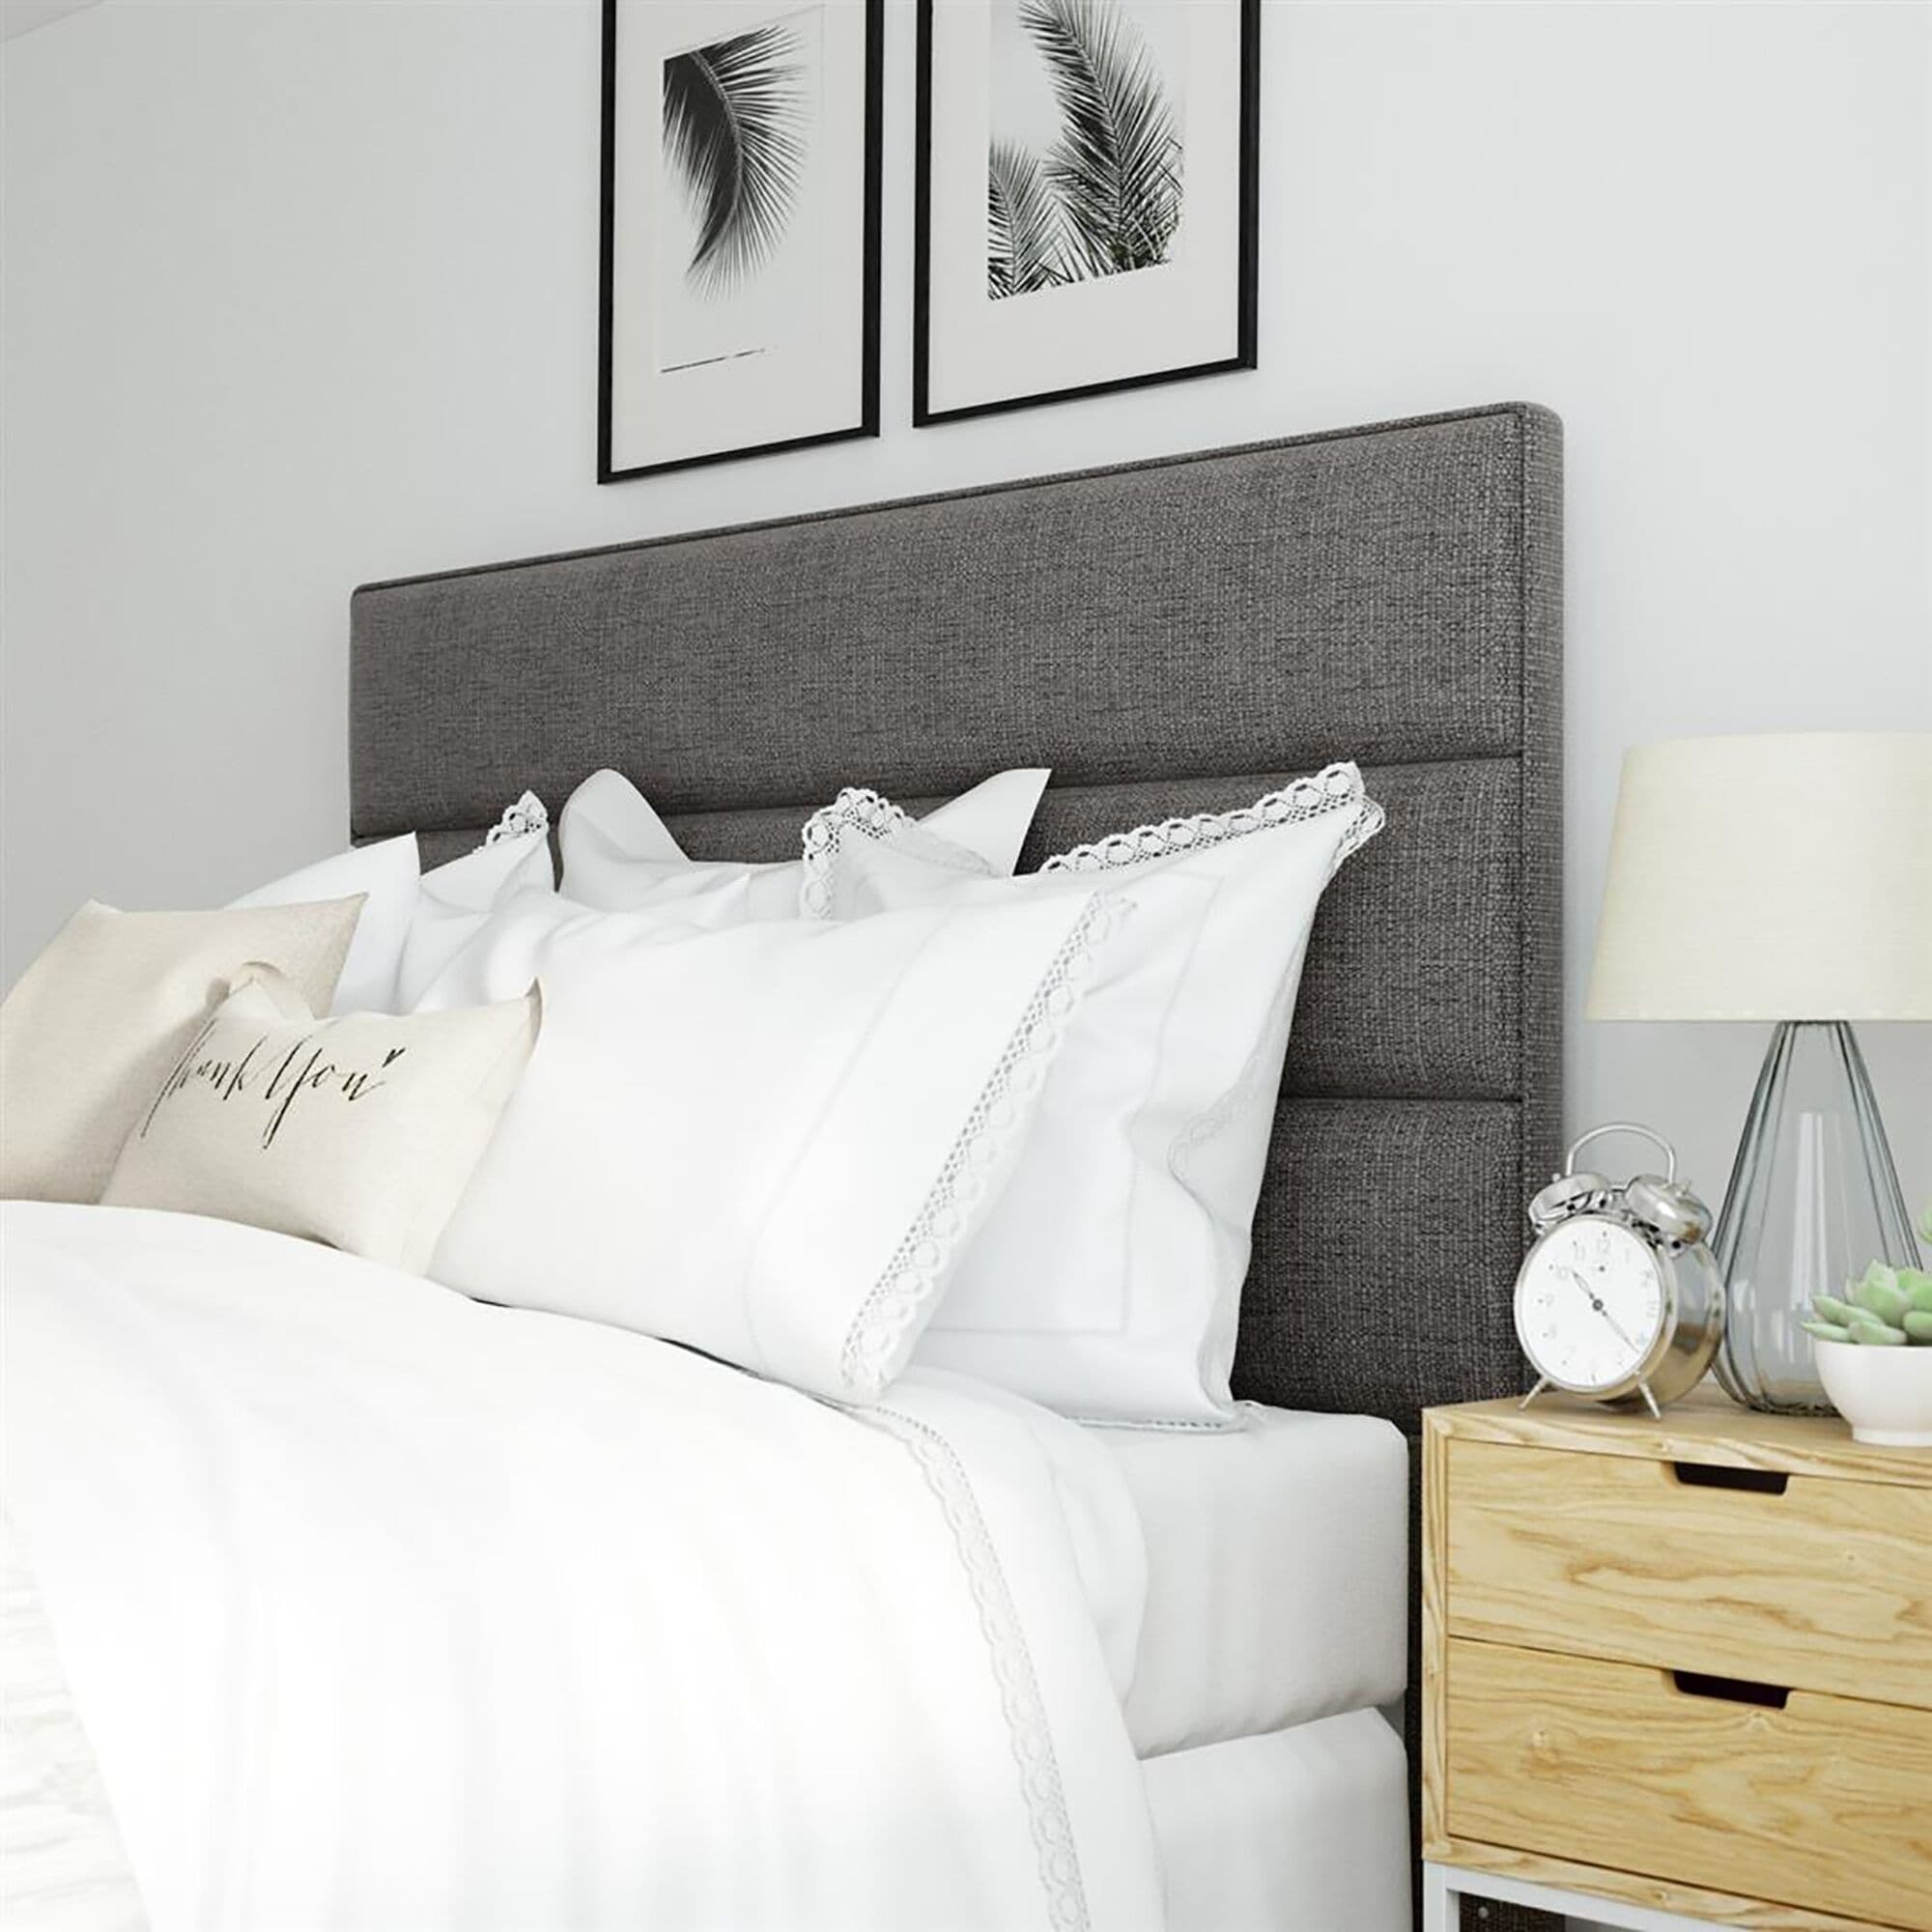 Serta Palisades Neutral Grey Upholstered Queen Size Headboard